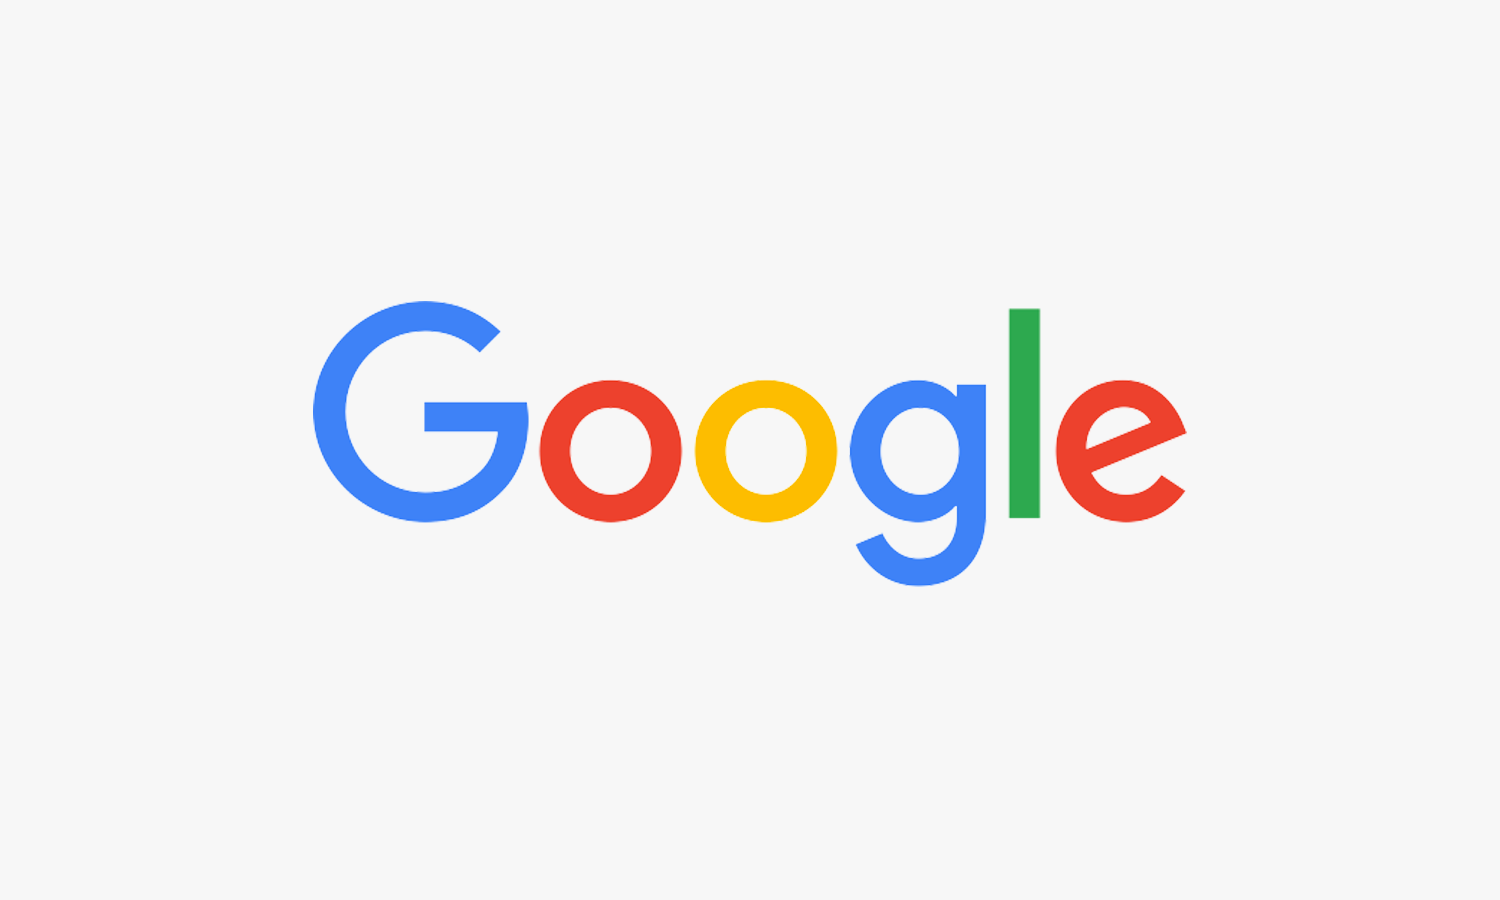 maps googlecom with Google New Logo on  also Google New Logo together with Any likewise Google s new animated logo is the future of mobile branding moreover 2.